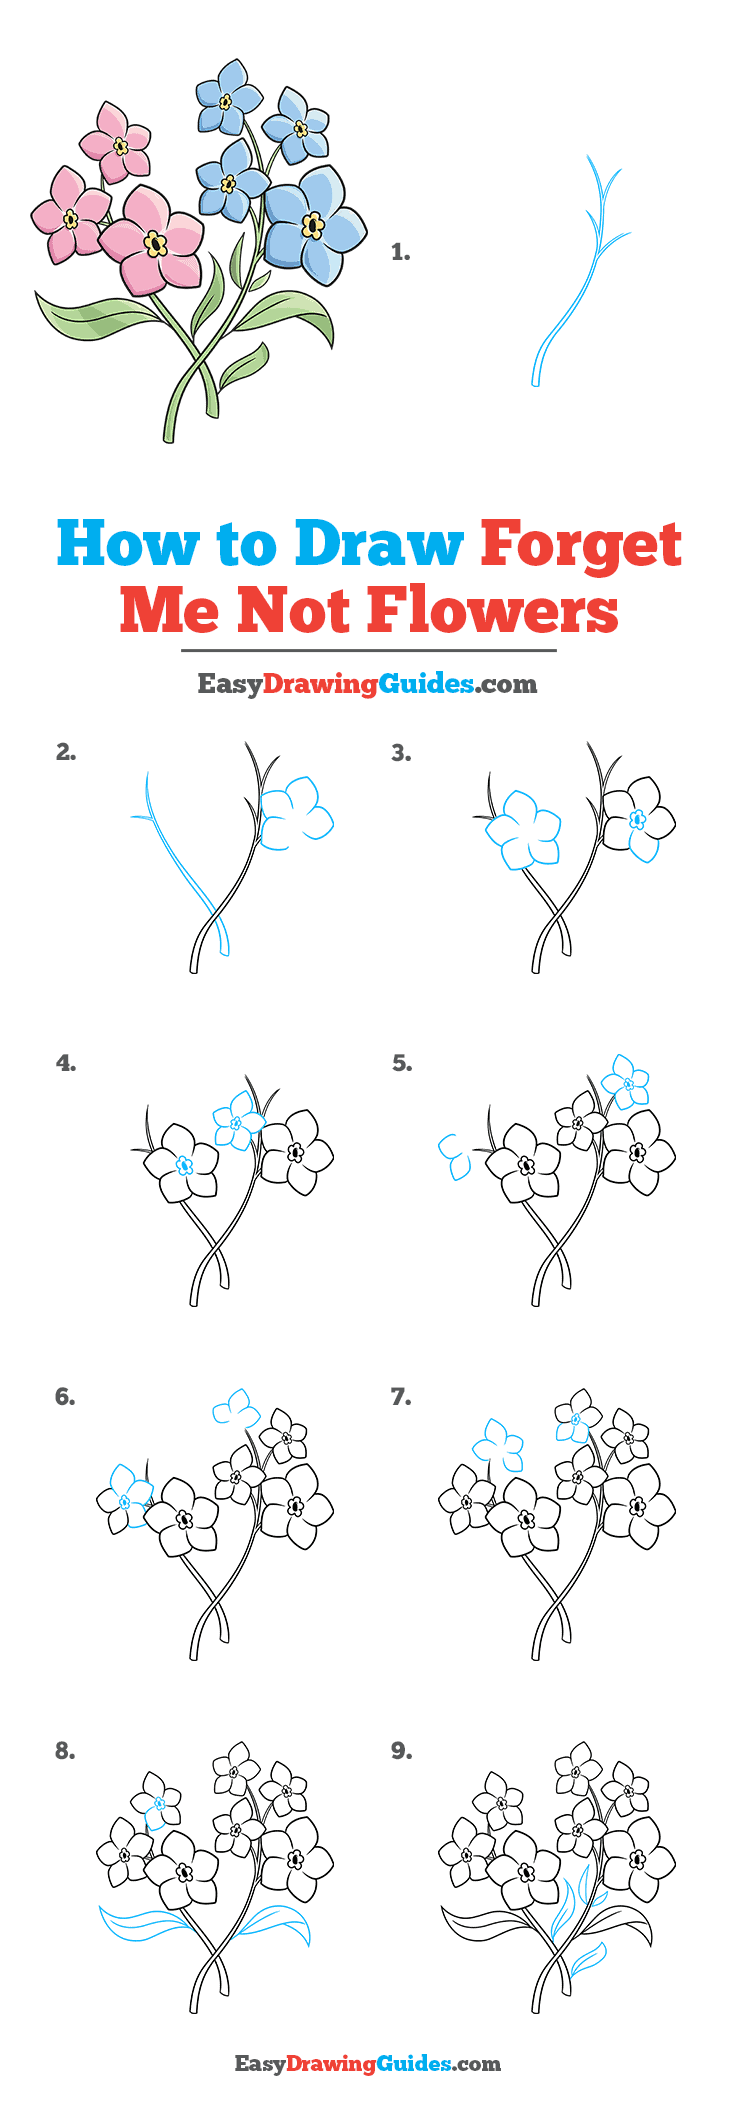 How to Draw Foget Me Not Flowers Step by Step Tutorial Image